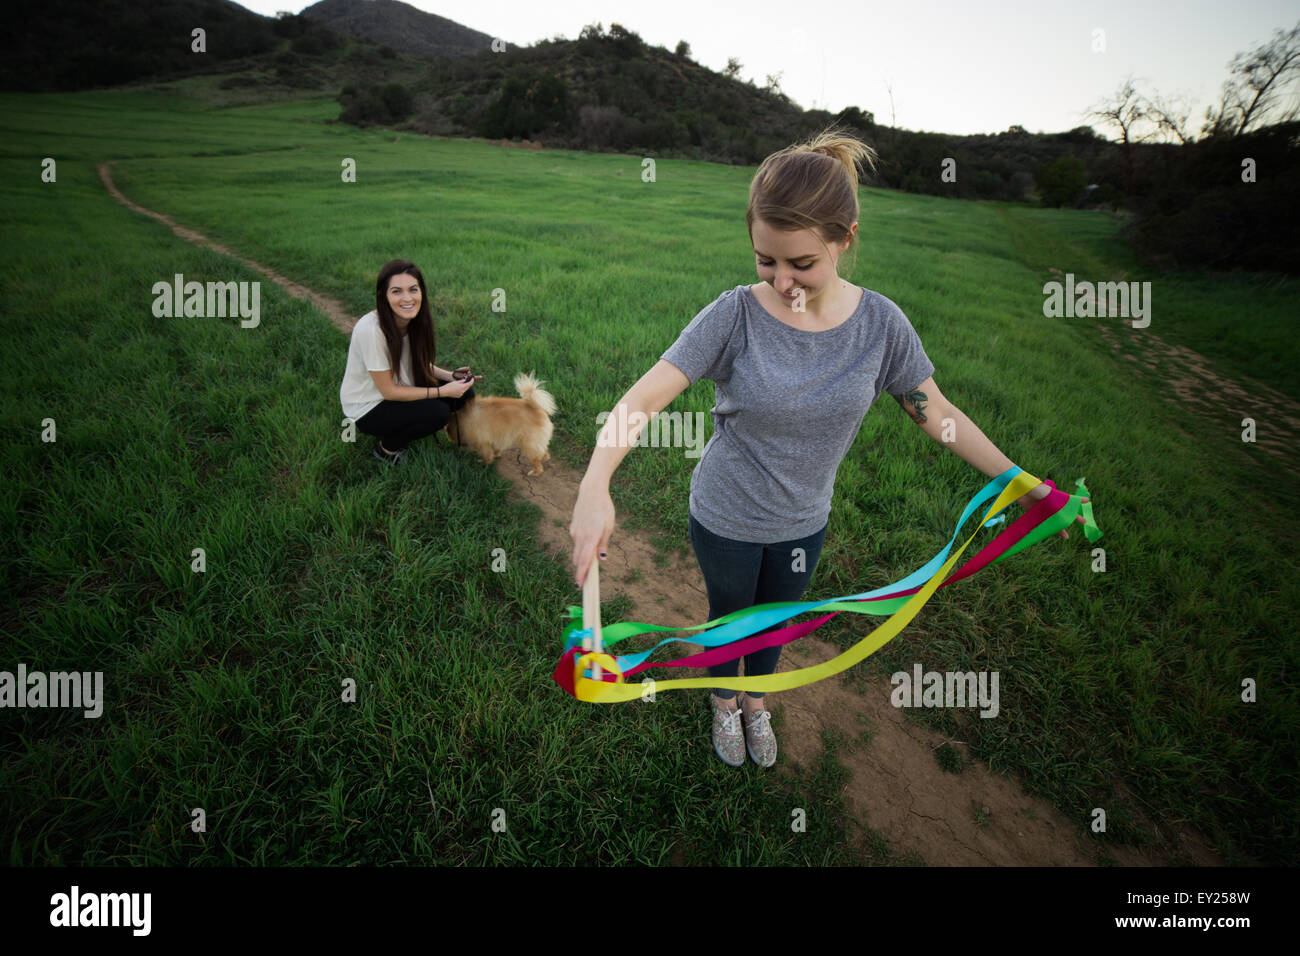 Young woman standing in field untangling dance ribbons - Stock Image